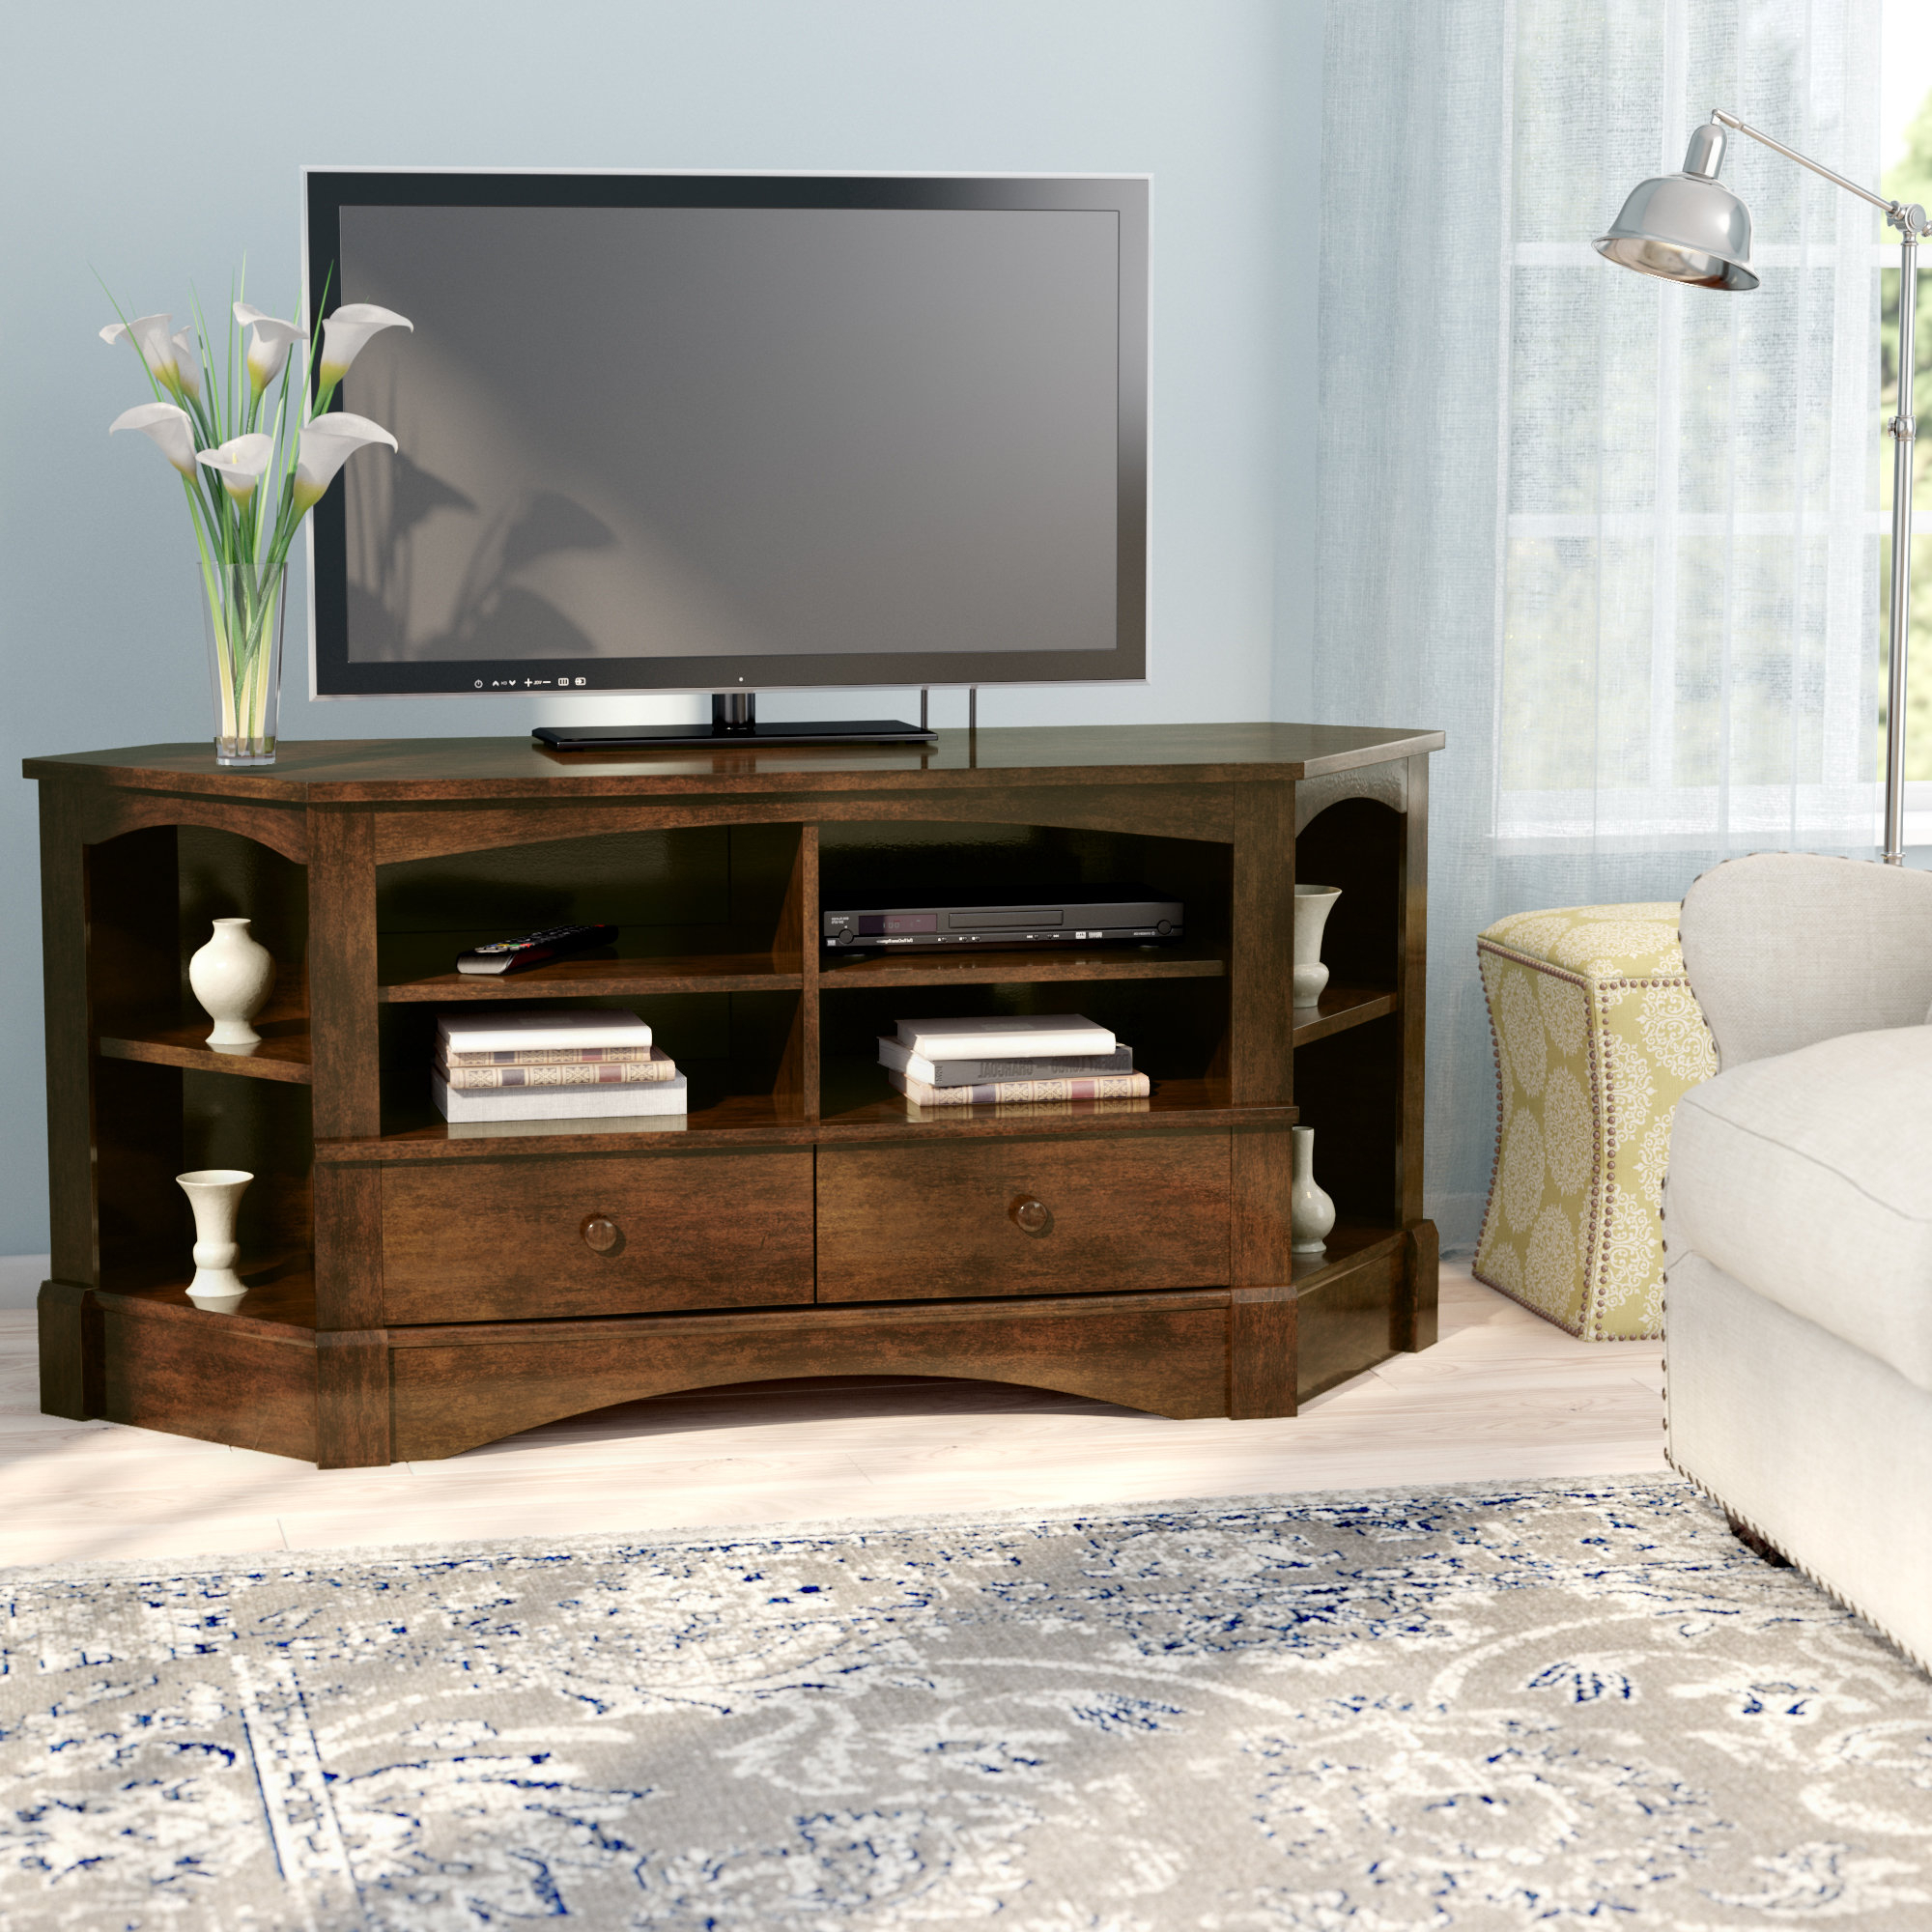 Cheap Corner Tv Stands For Flat Screen With 2018 Corner Tv Stands You'll Love (View 5 of 20)